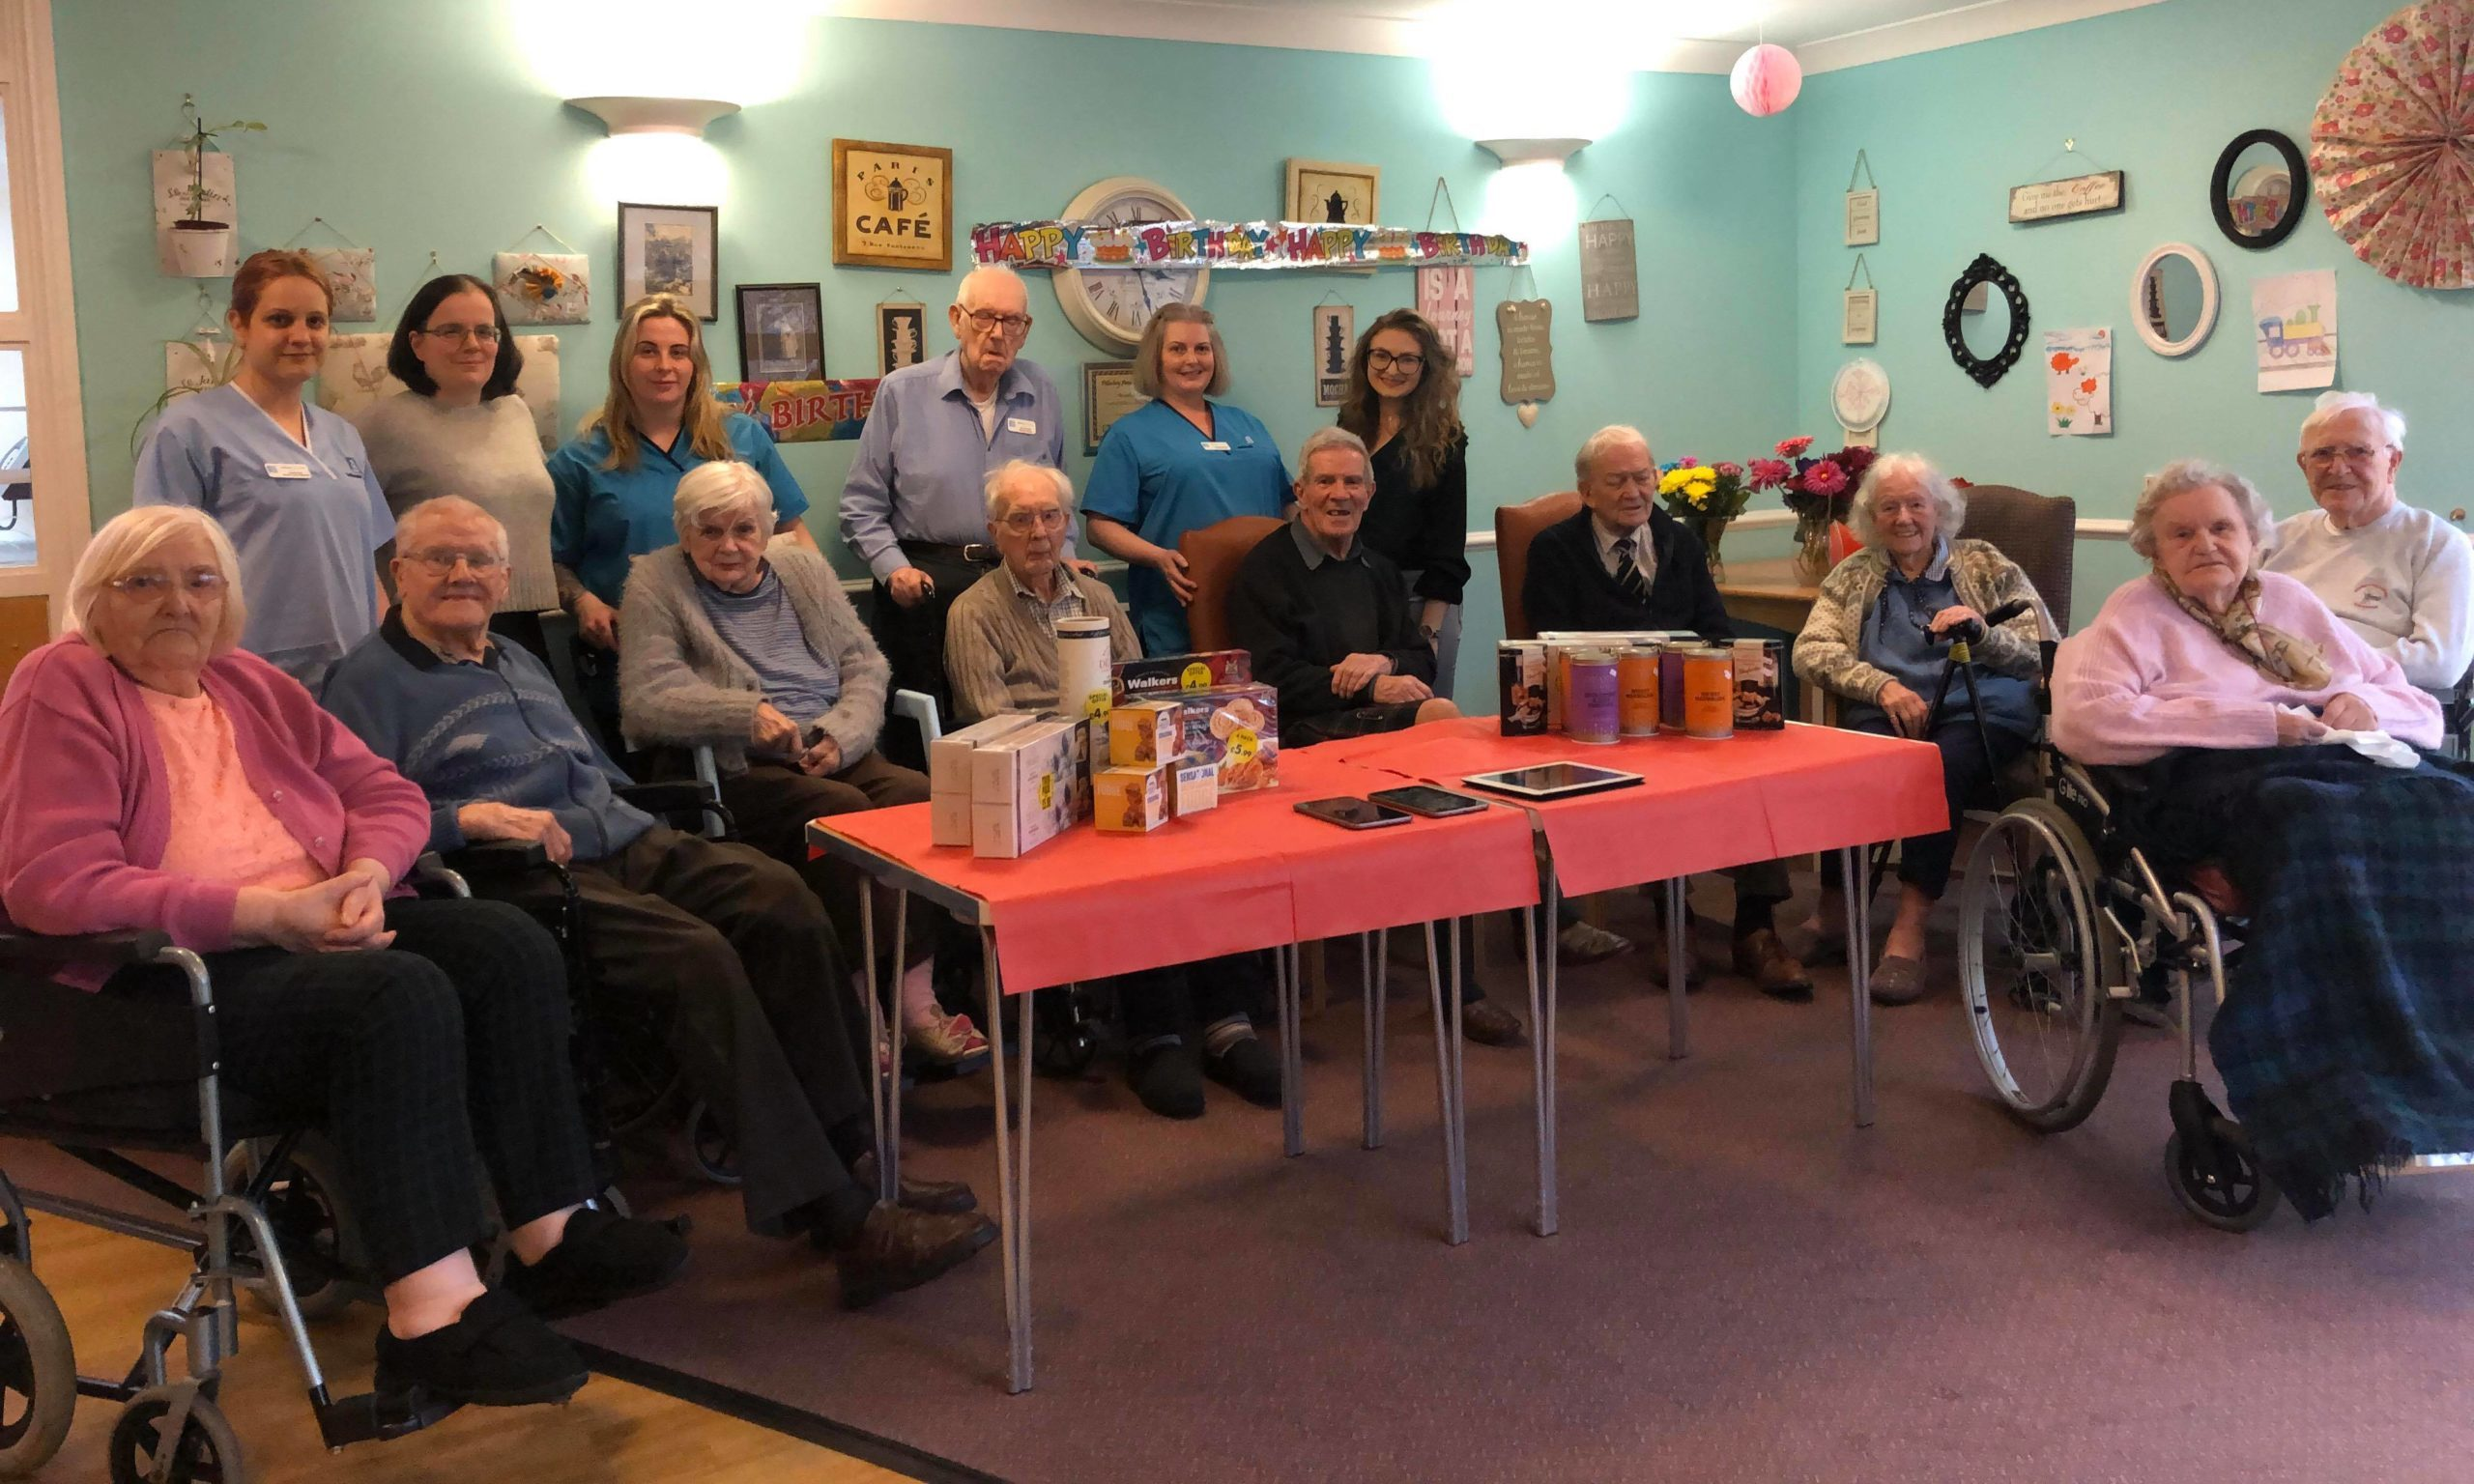 Residents at Balhousie Care Home in Pitlochry